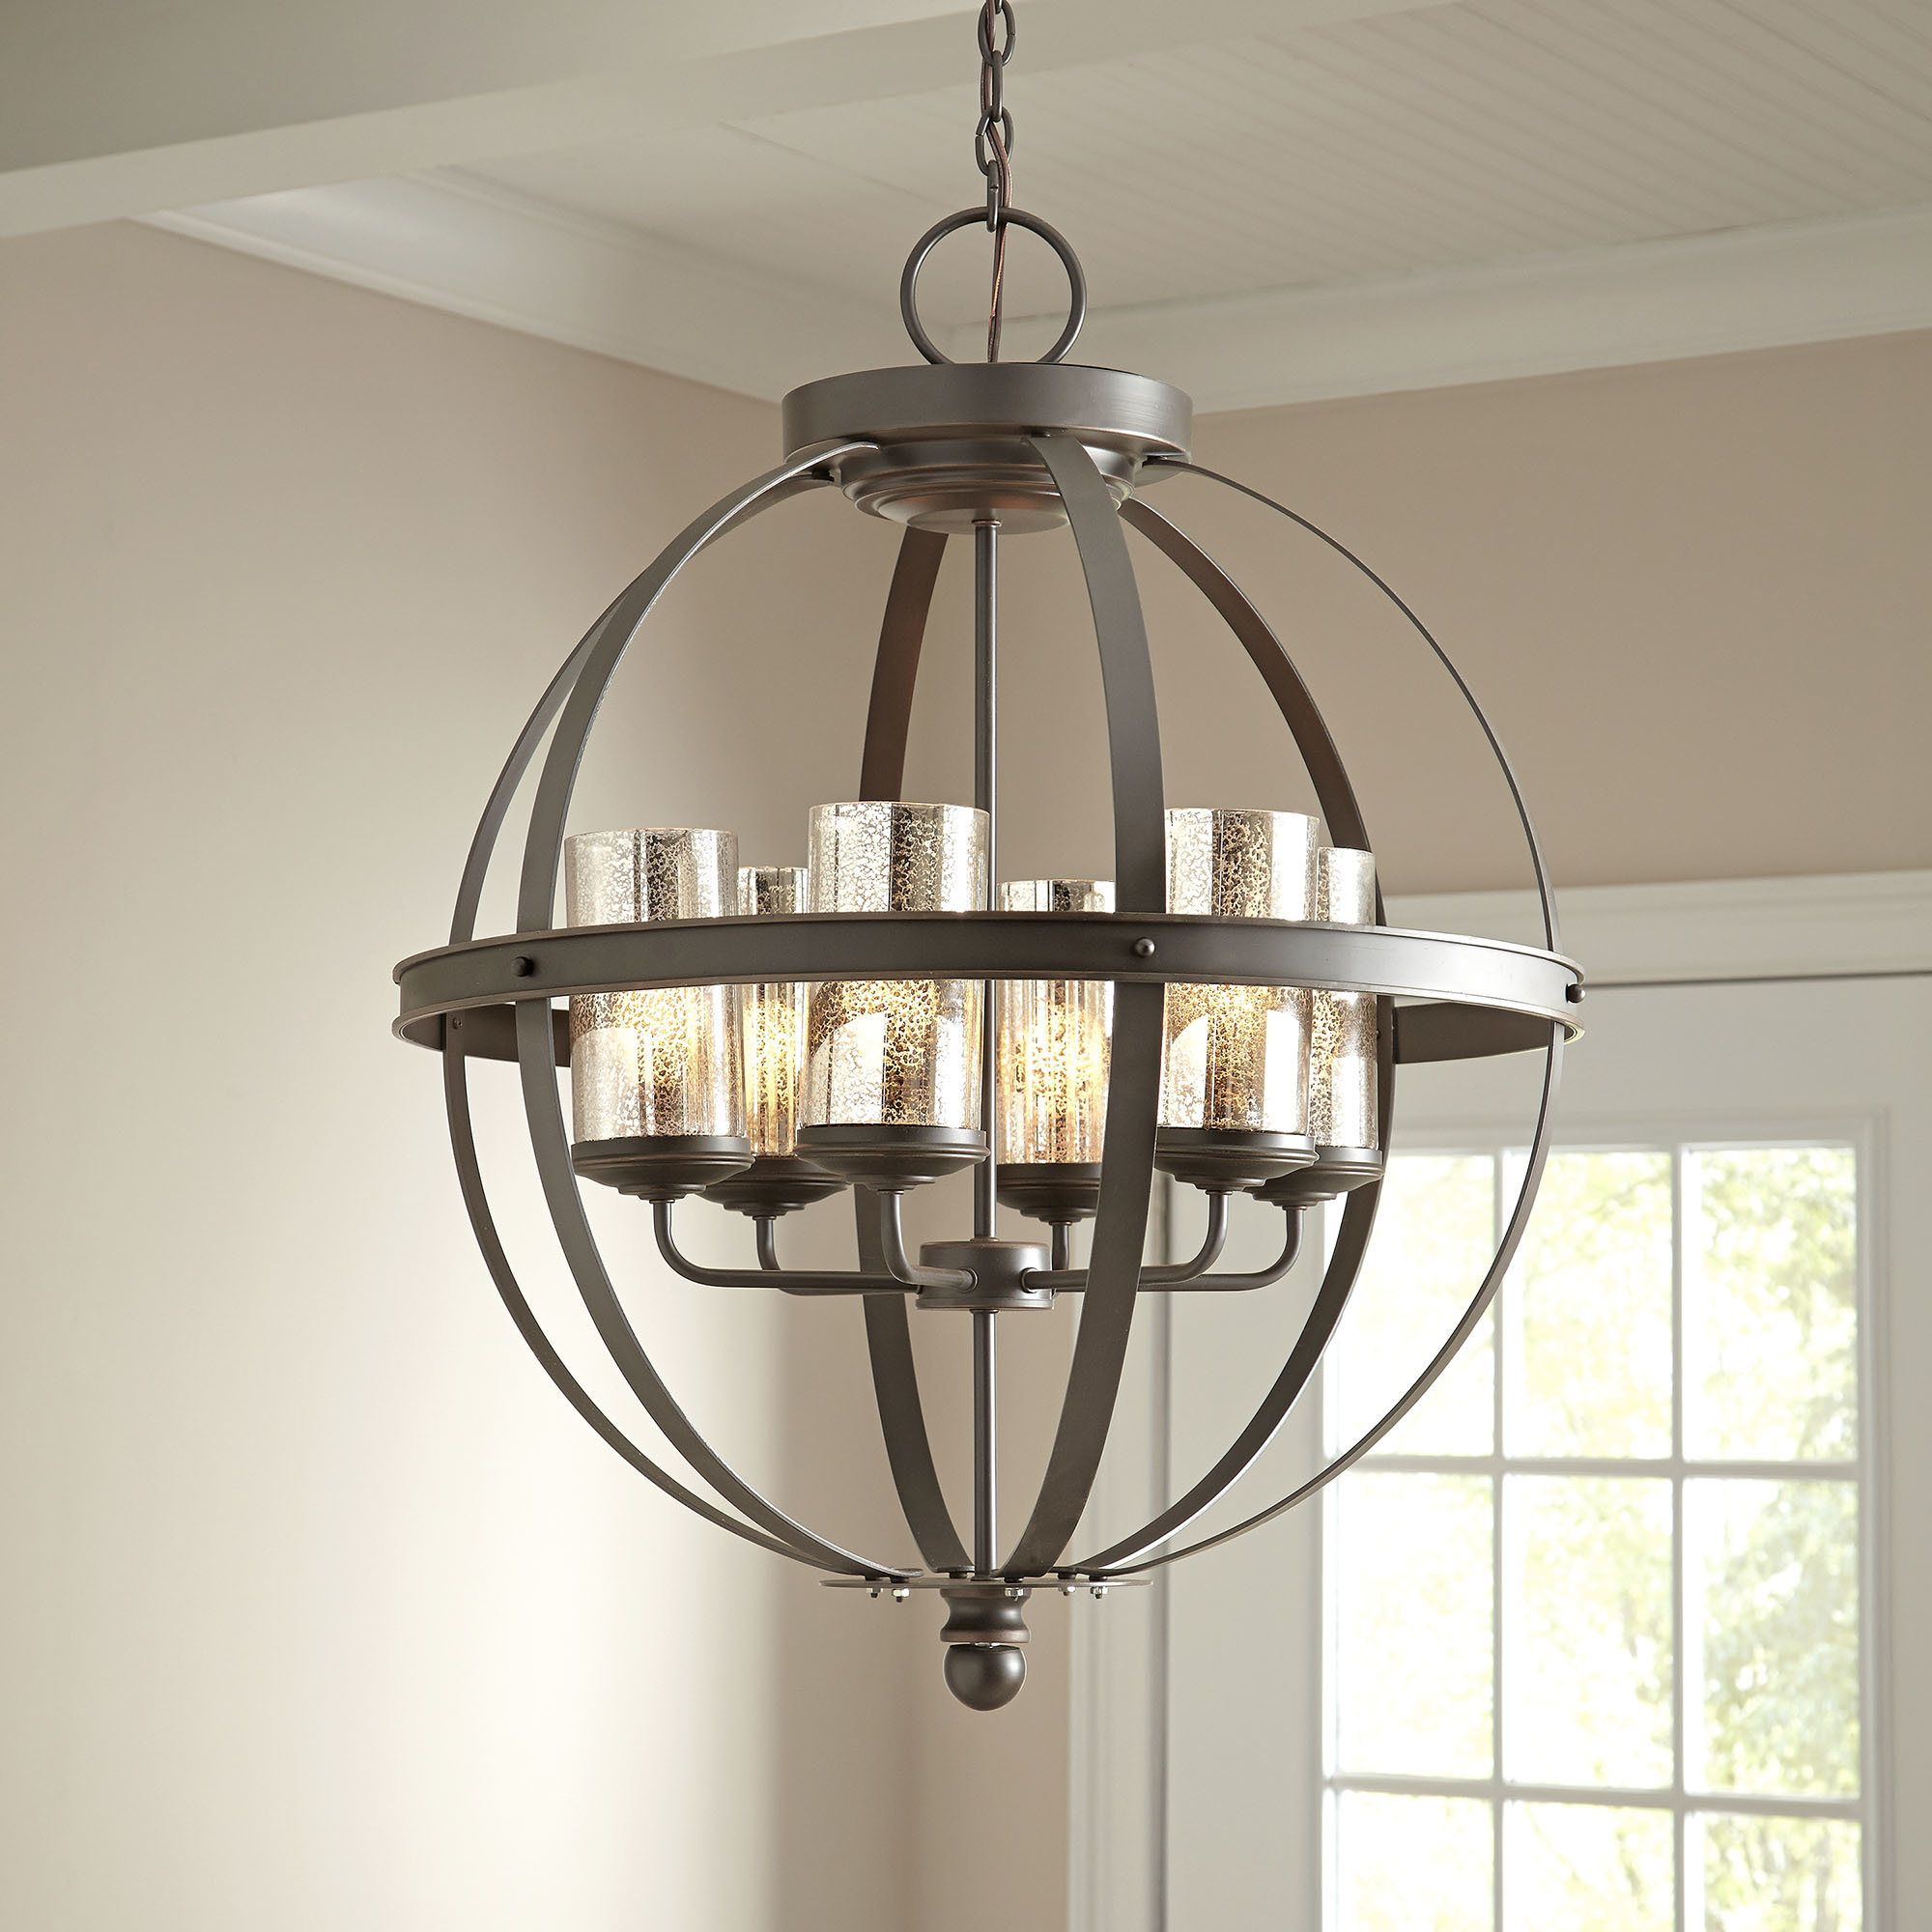 Donna 6-Light Globe Chandelier within Alden 6-Light Globe Chandeliers (Image 10 of 30)